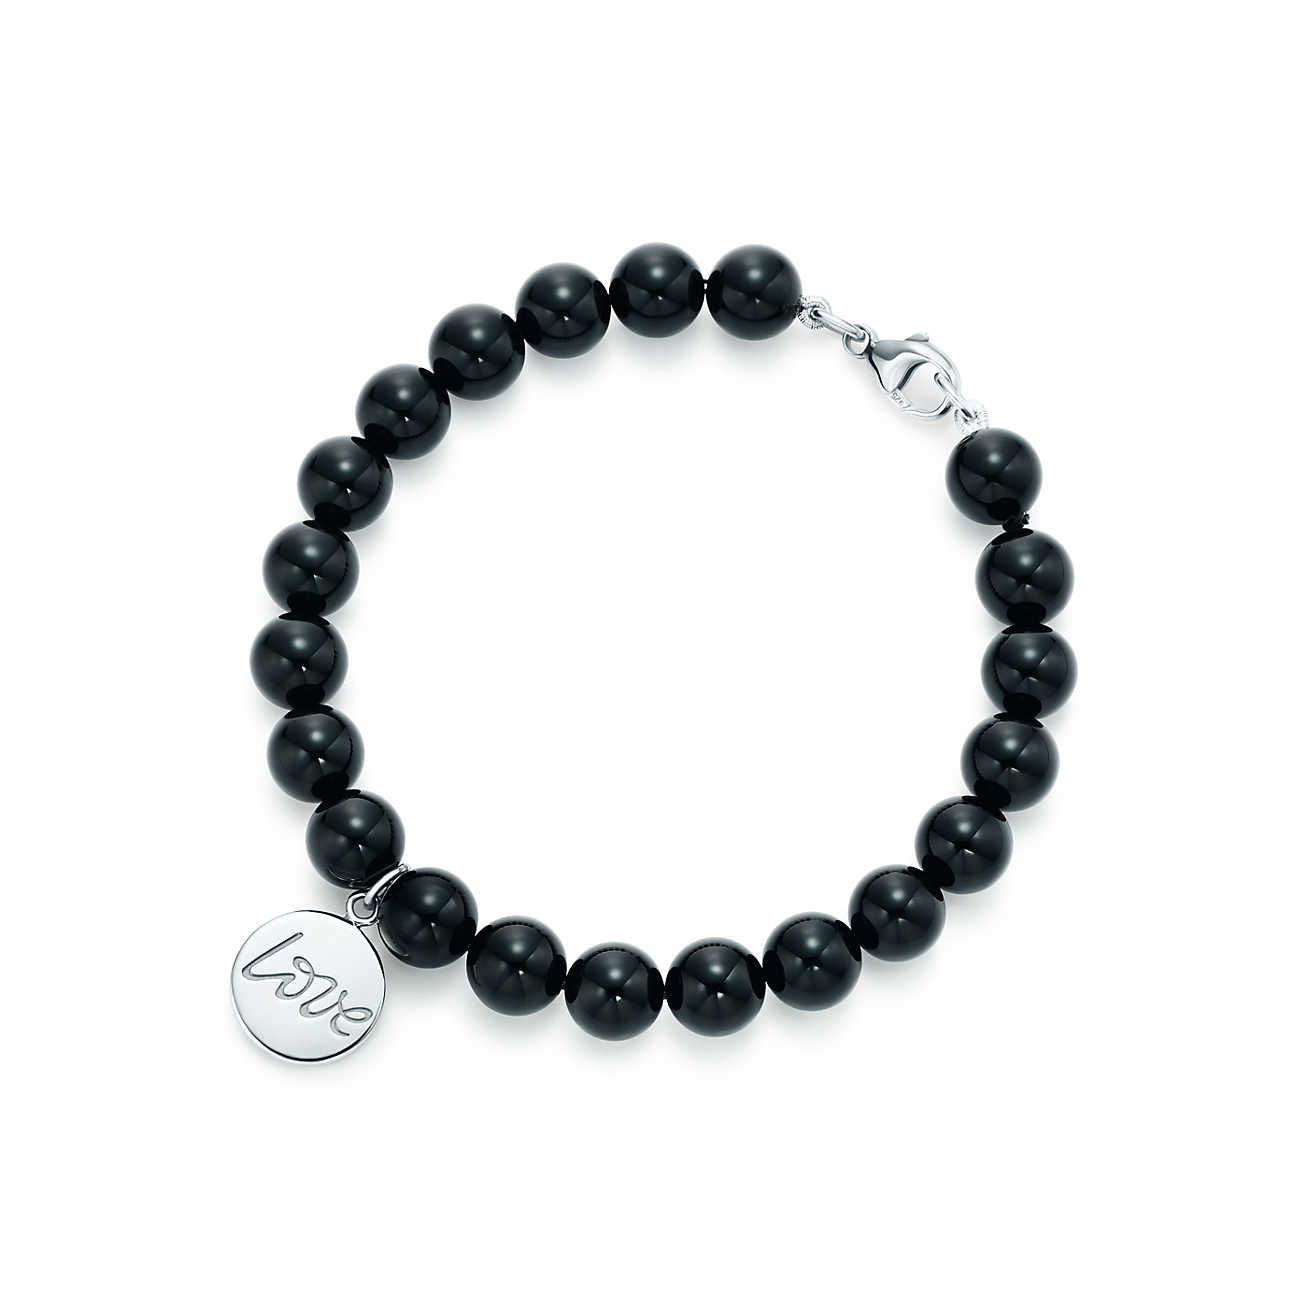 Palomas Graffiti peace tag in sterling silver on a bead bracelet, medium Tiffany & Co.